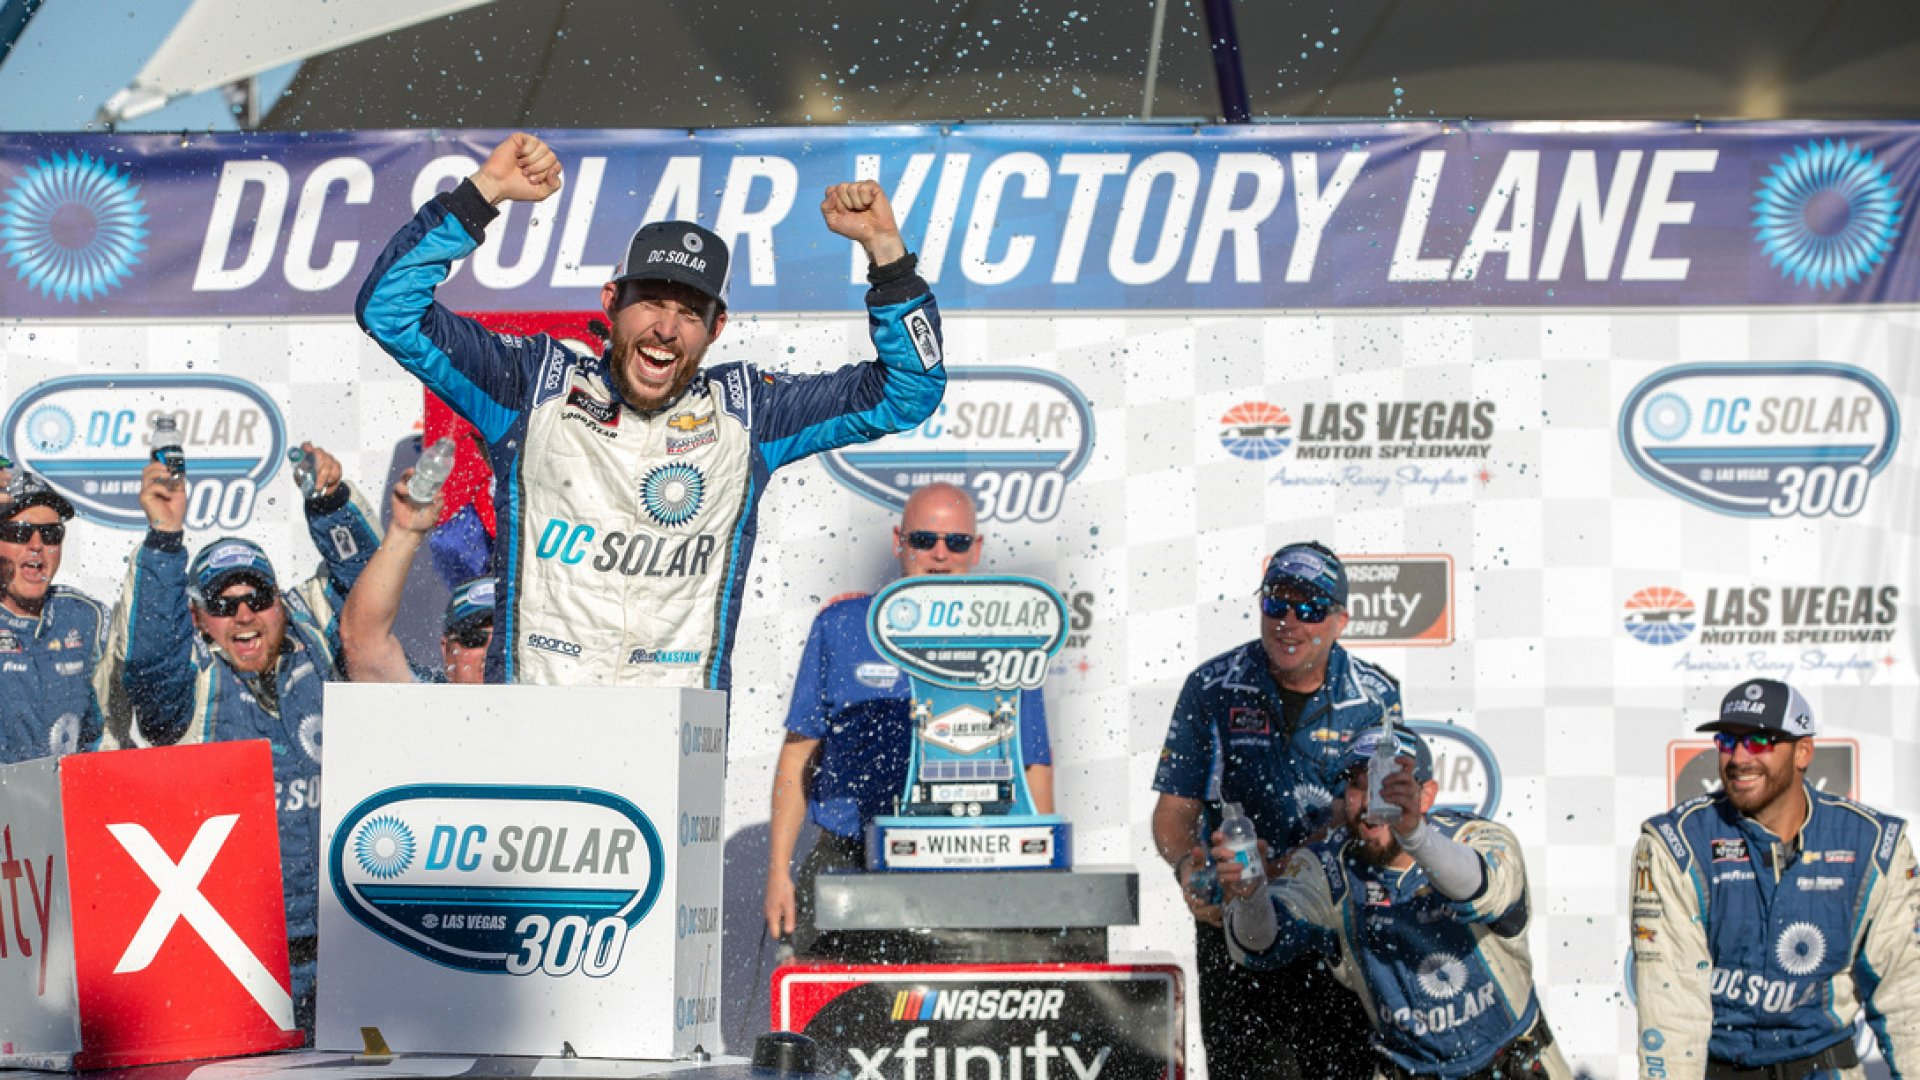 Ross Chastain in Victory Lane after Winning the DC Solar 300.